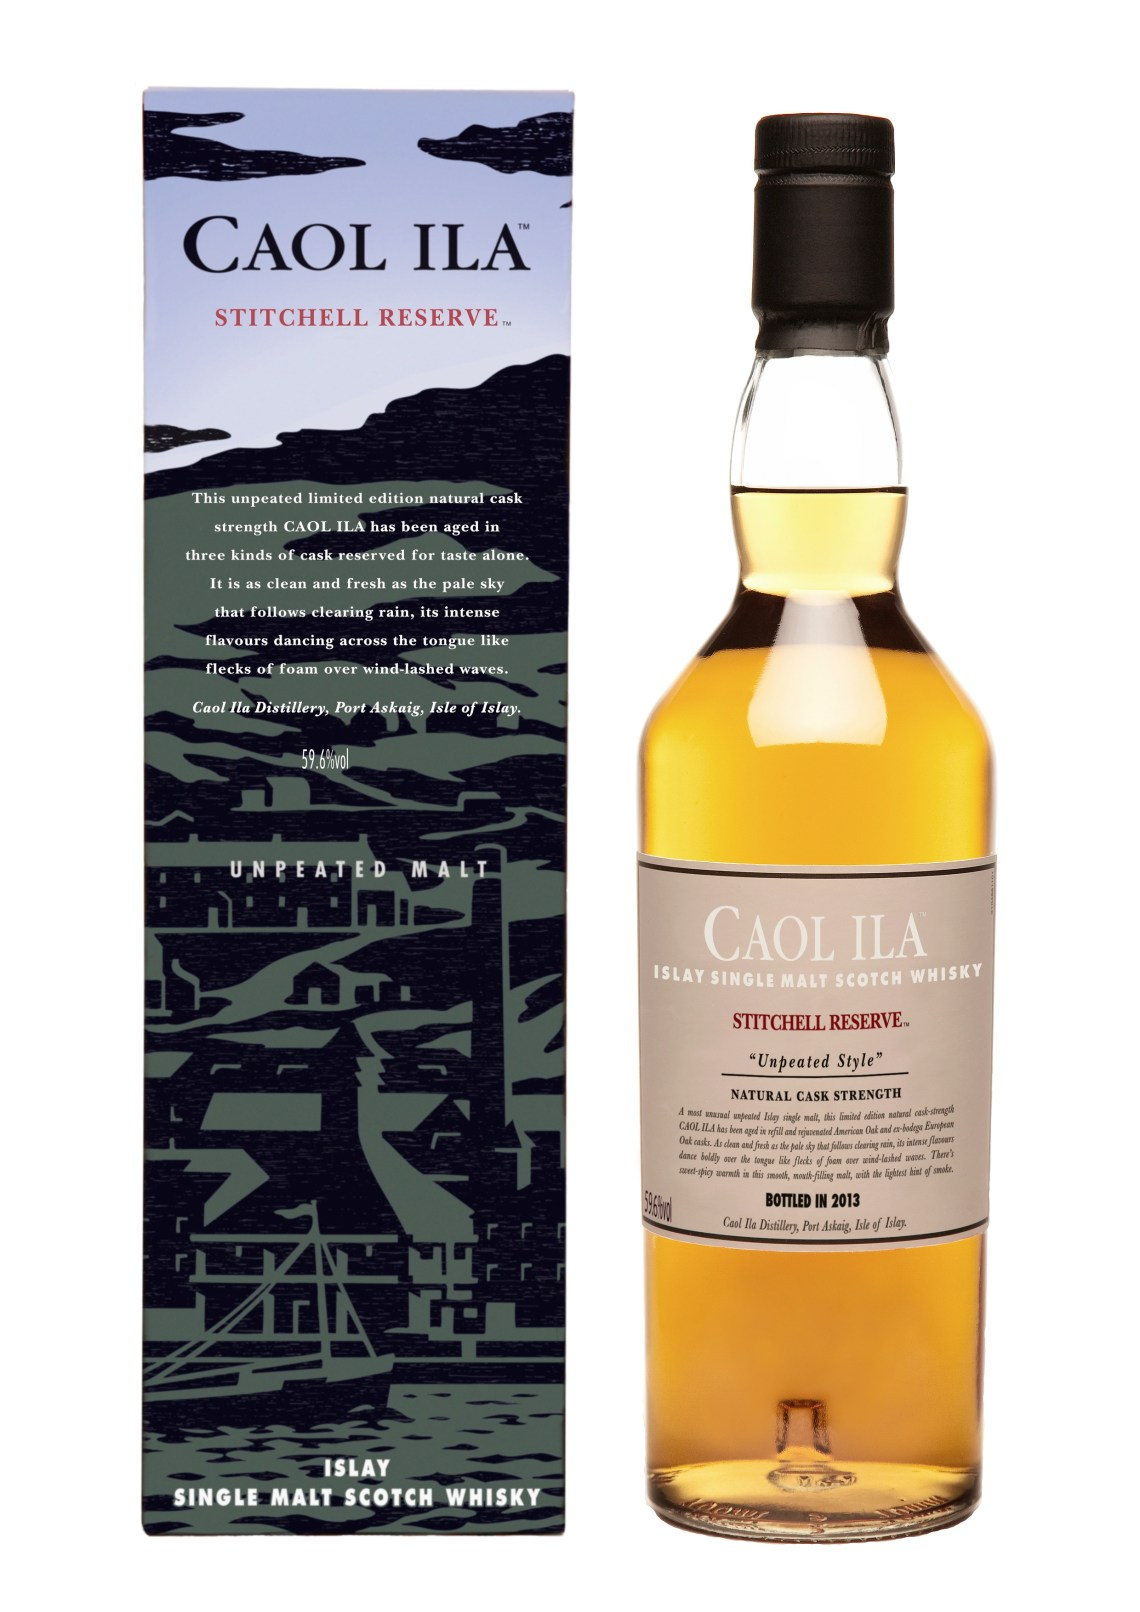 Caol Ila Stitchell Reserve Unpeated Style Limited Edition 2013